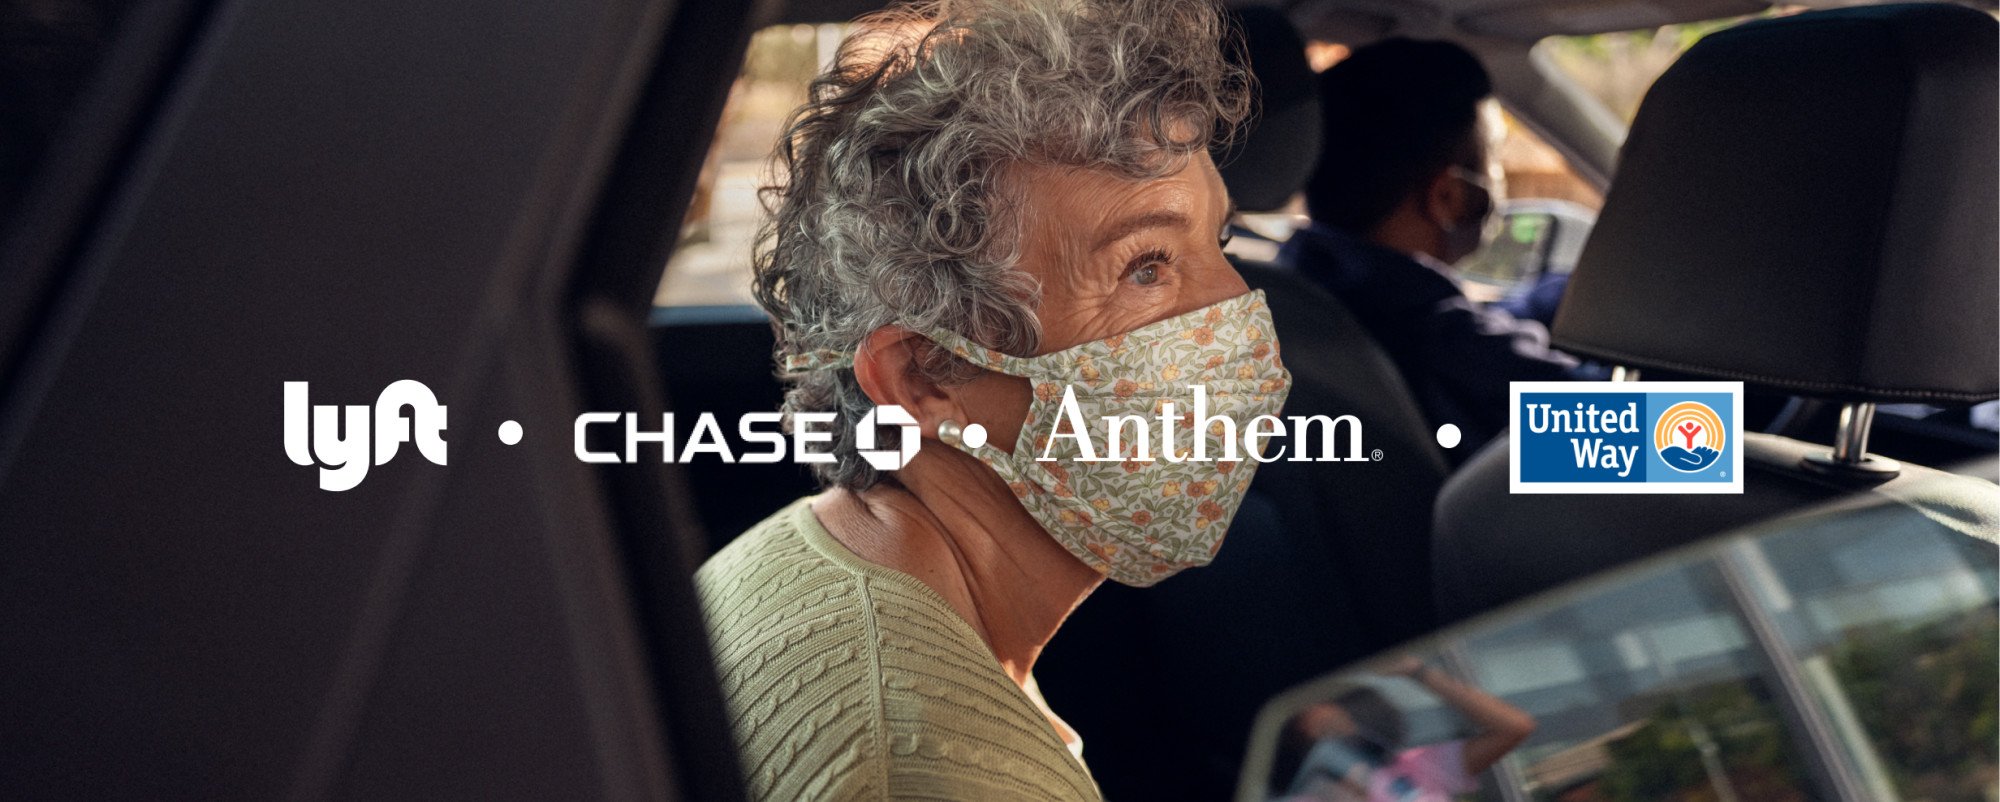 We're partnering with Anthem, JPMorgan Chase, and United Way to launch a universal vaccine access campaign